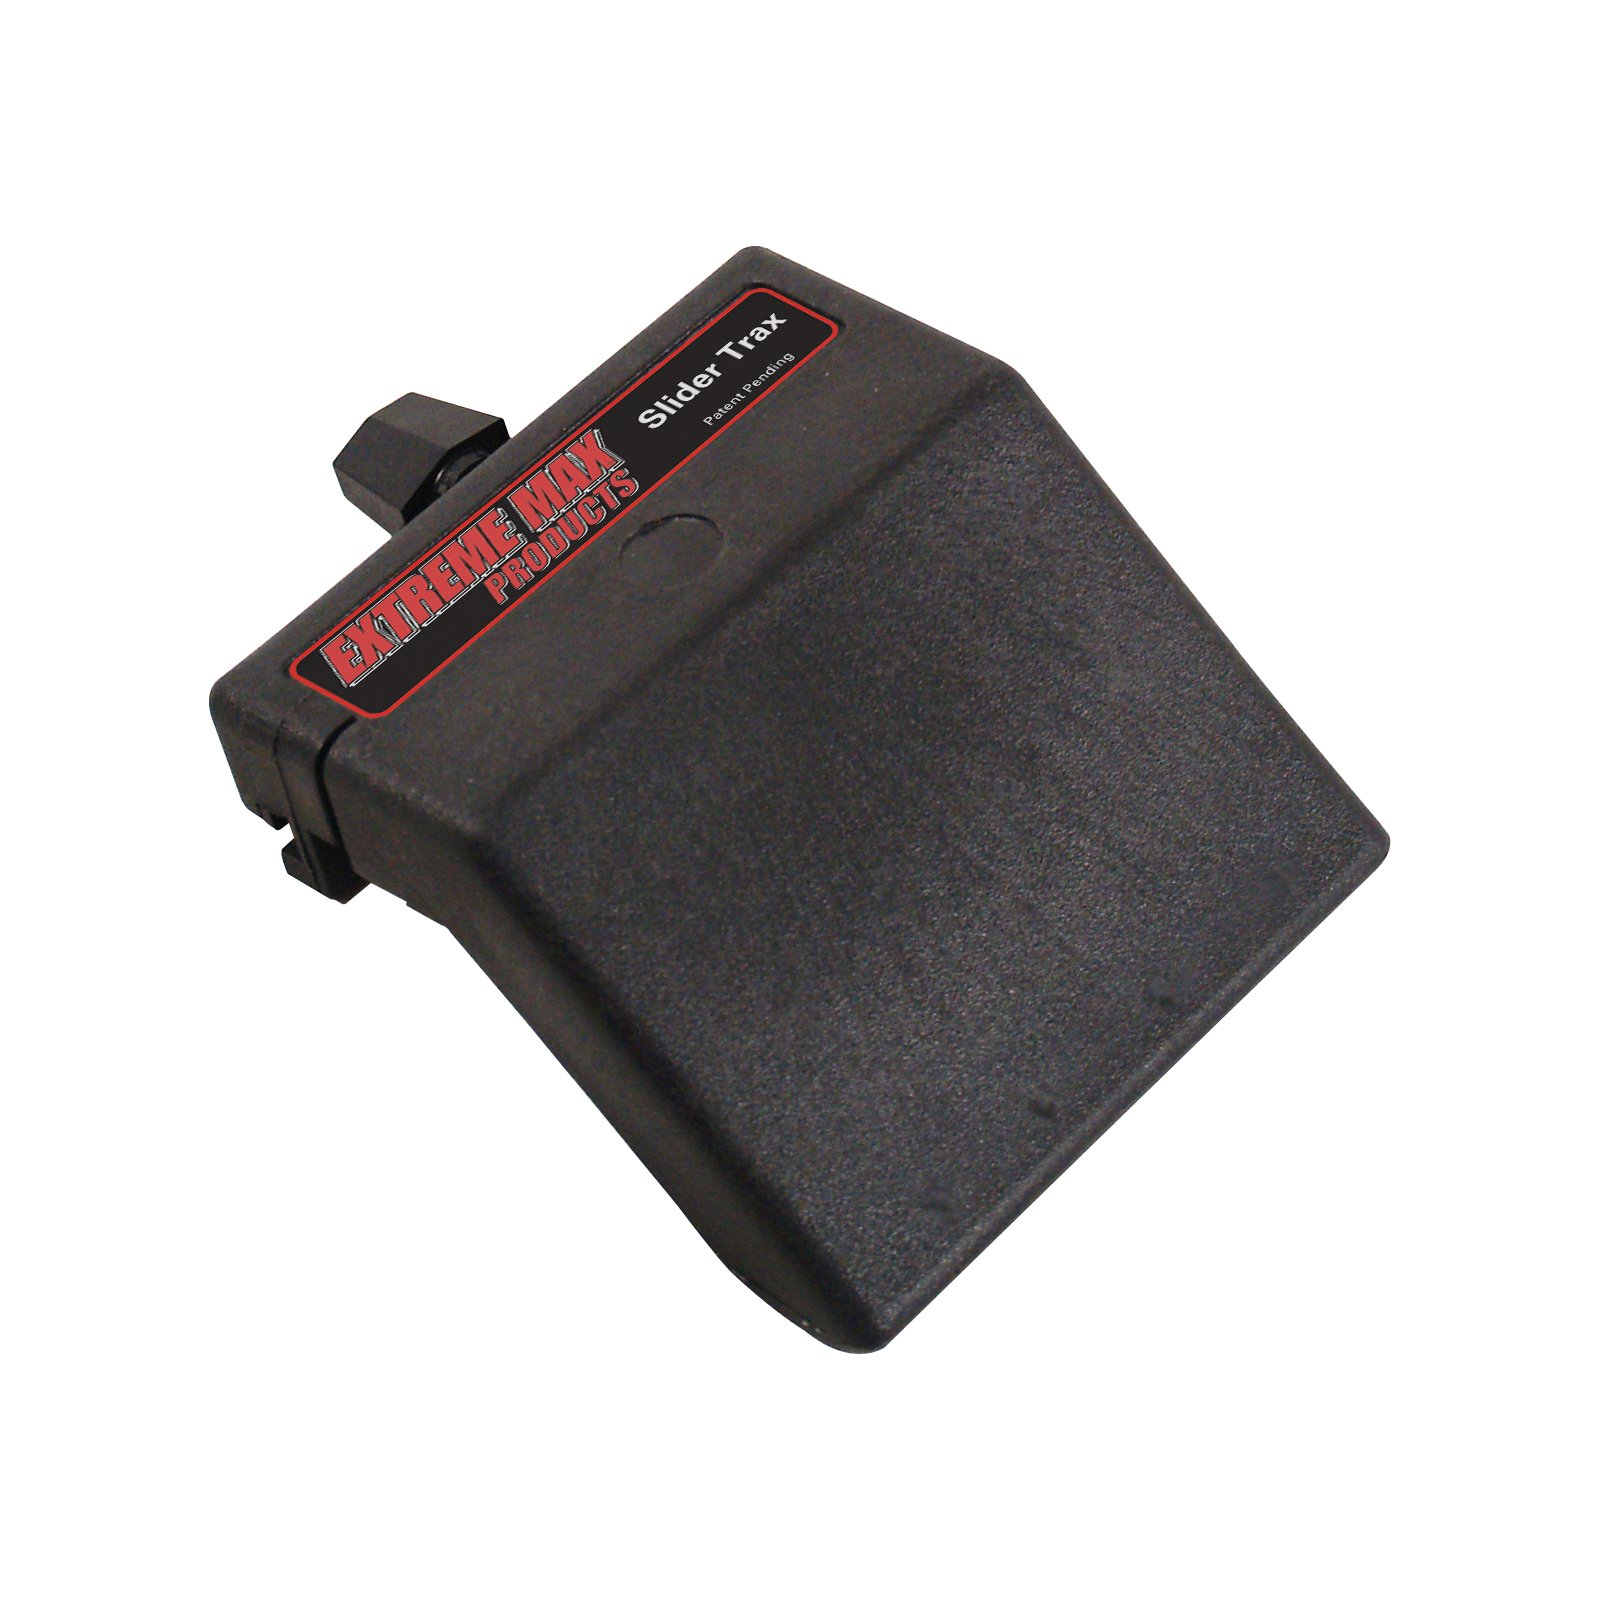 Extreme Max 3004.3093 45 degree Base for Slider Trax / OEM Marine Accessory Mounting Systems, Each by Extreme Max